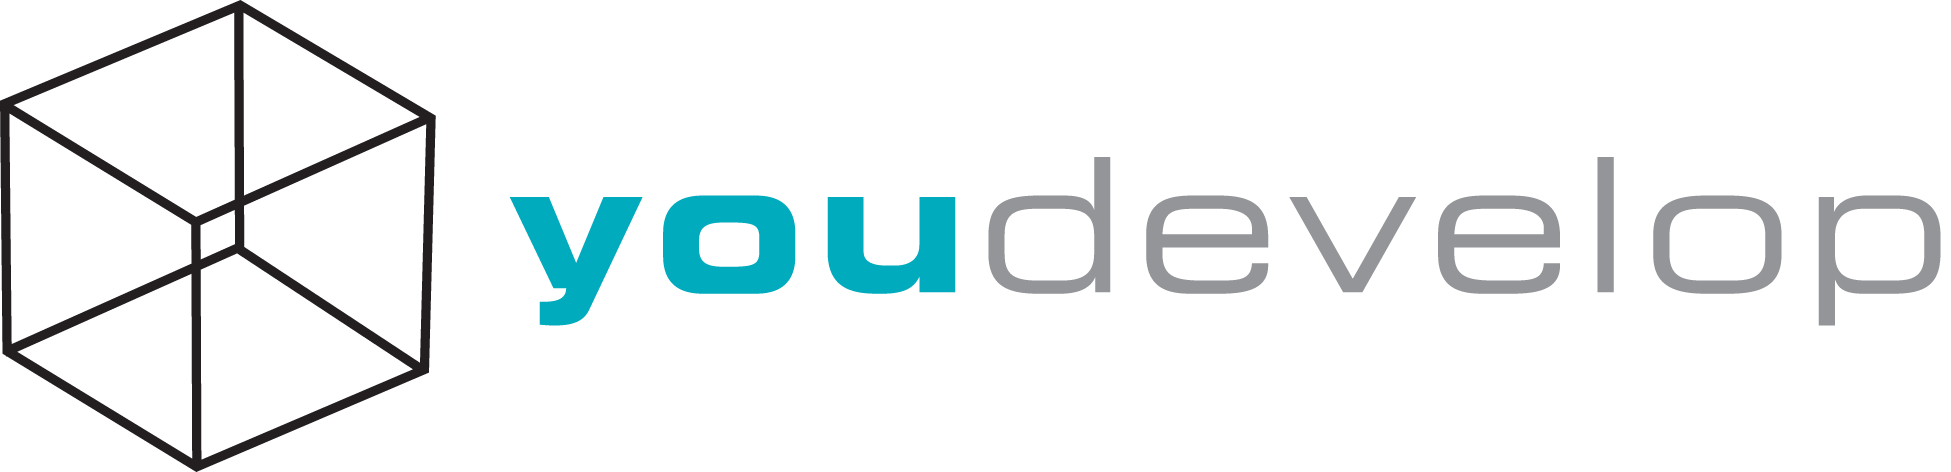 youdevelop